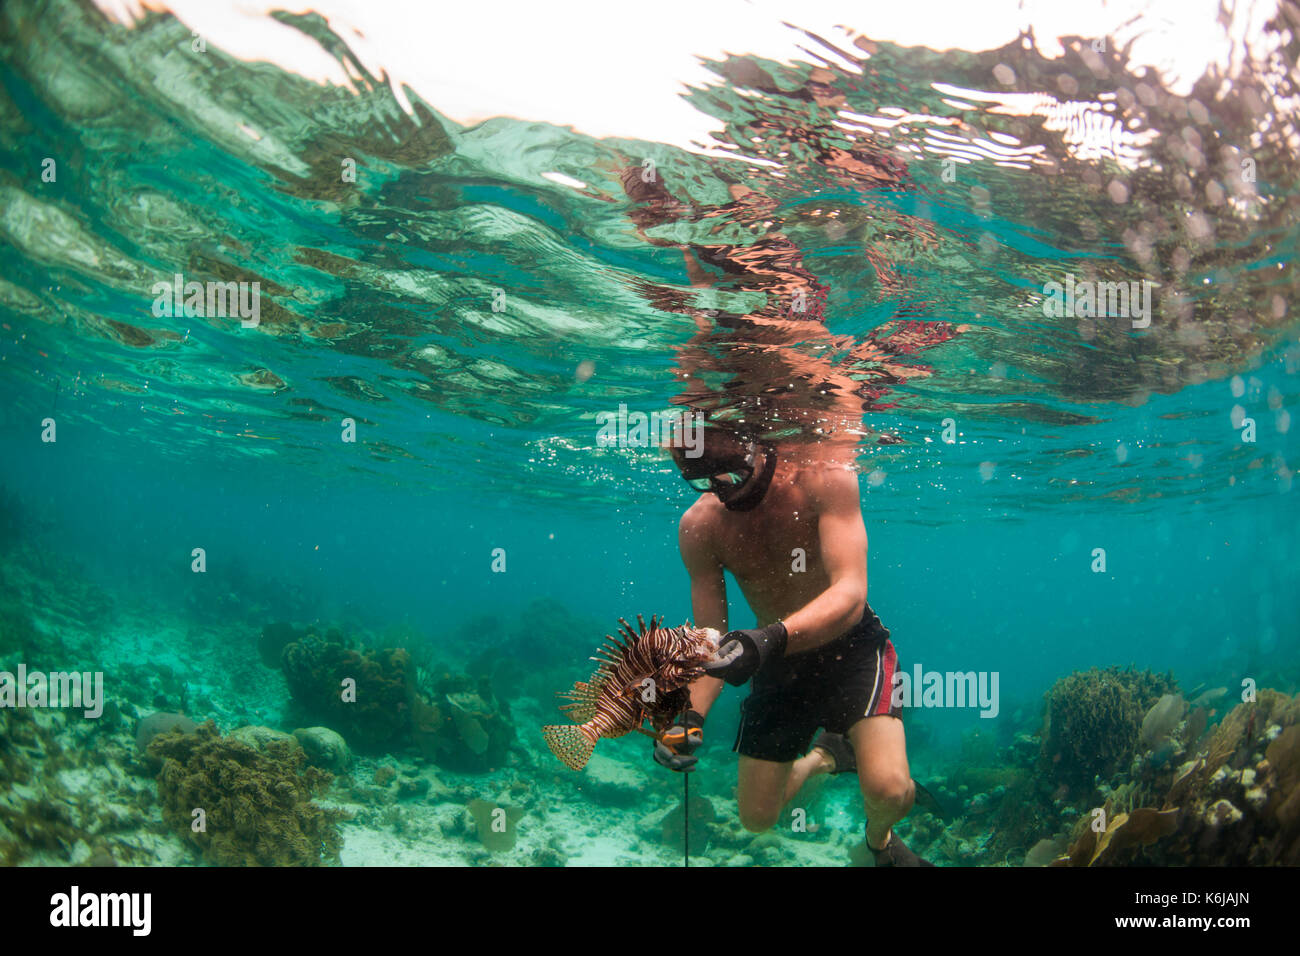 Man gently handling lion fish after spearing it, Atlantic Ocean - Stock Image